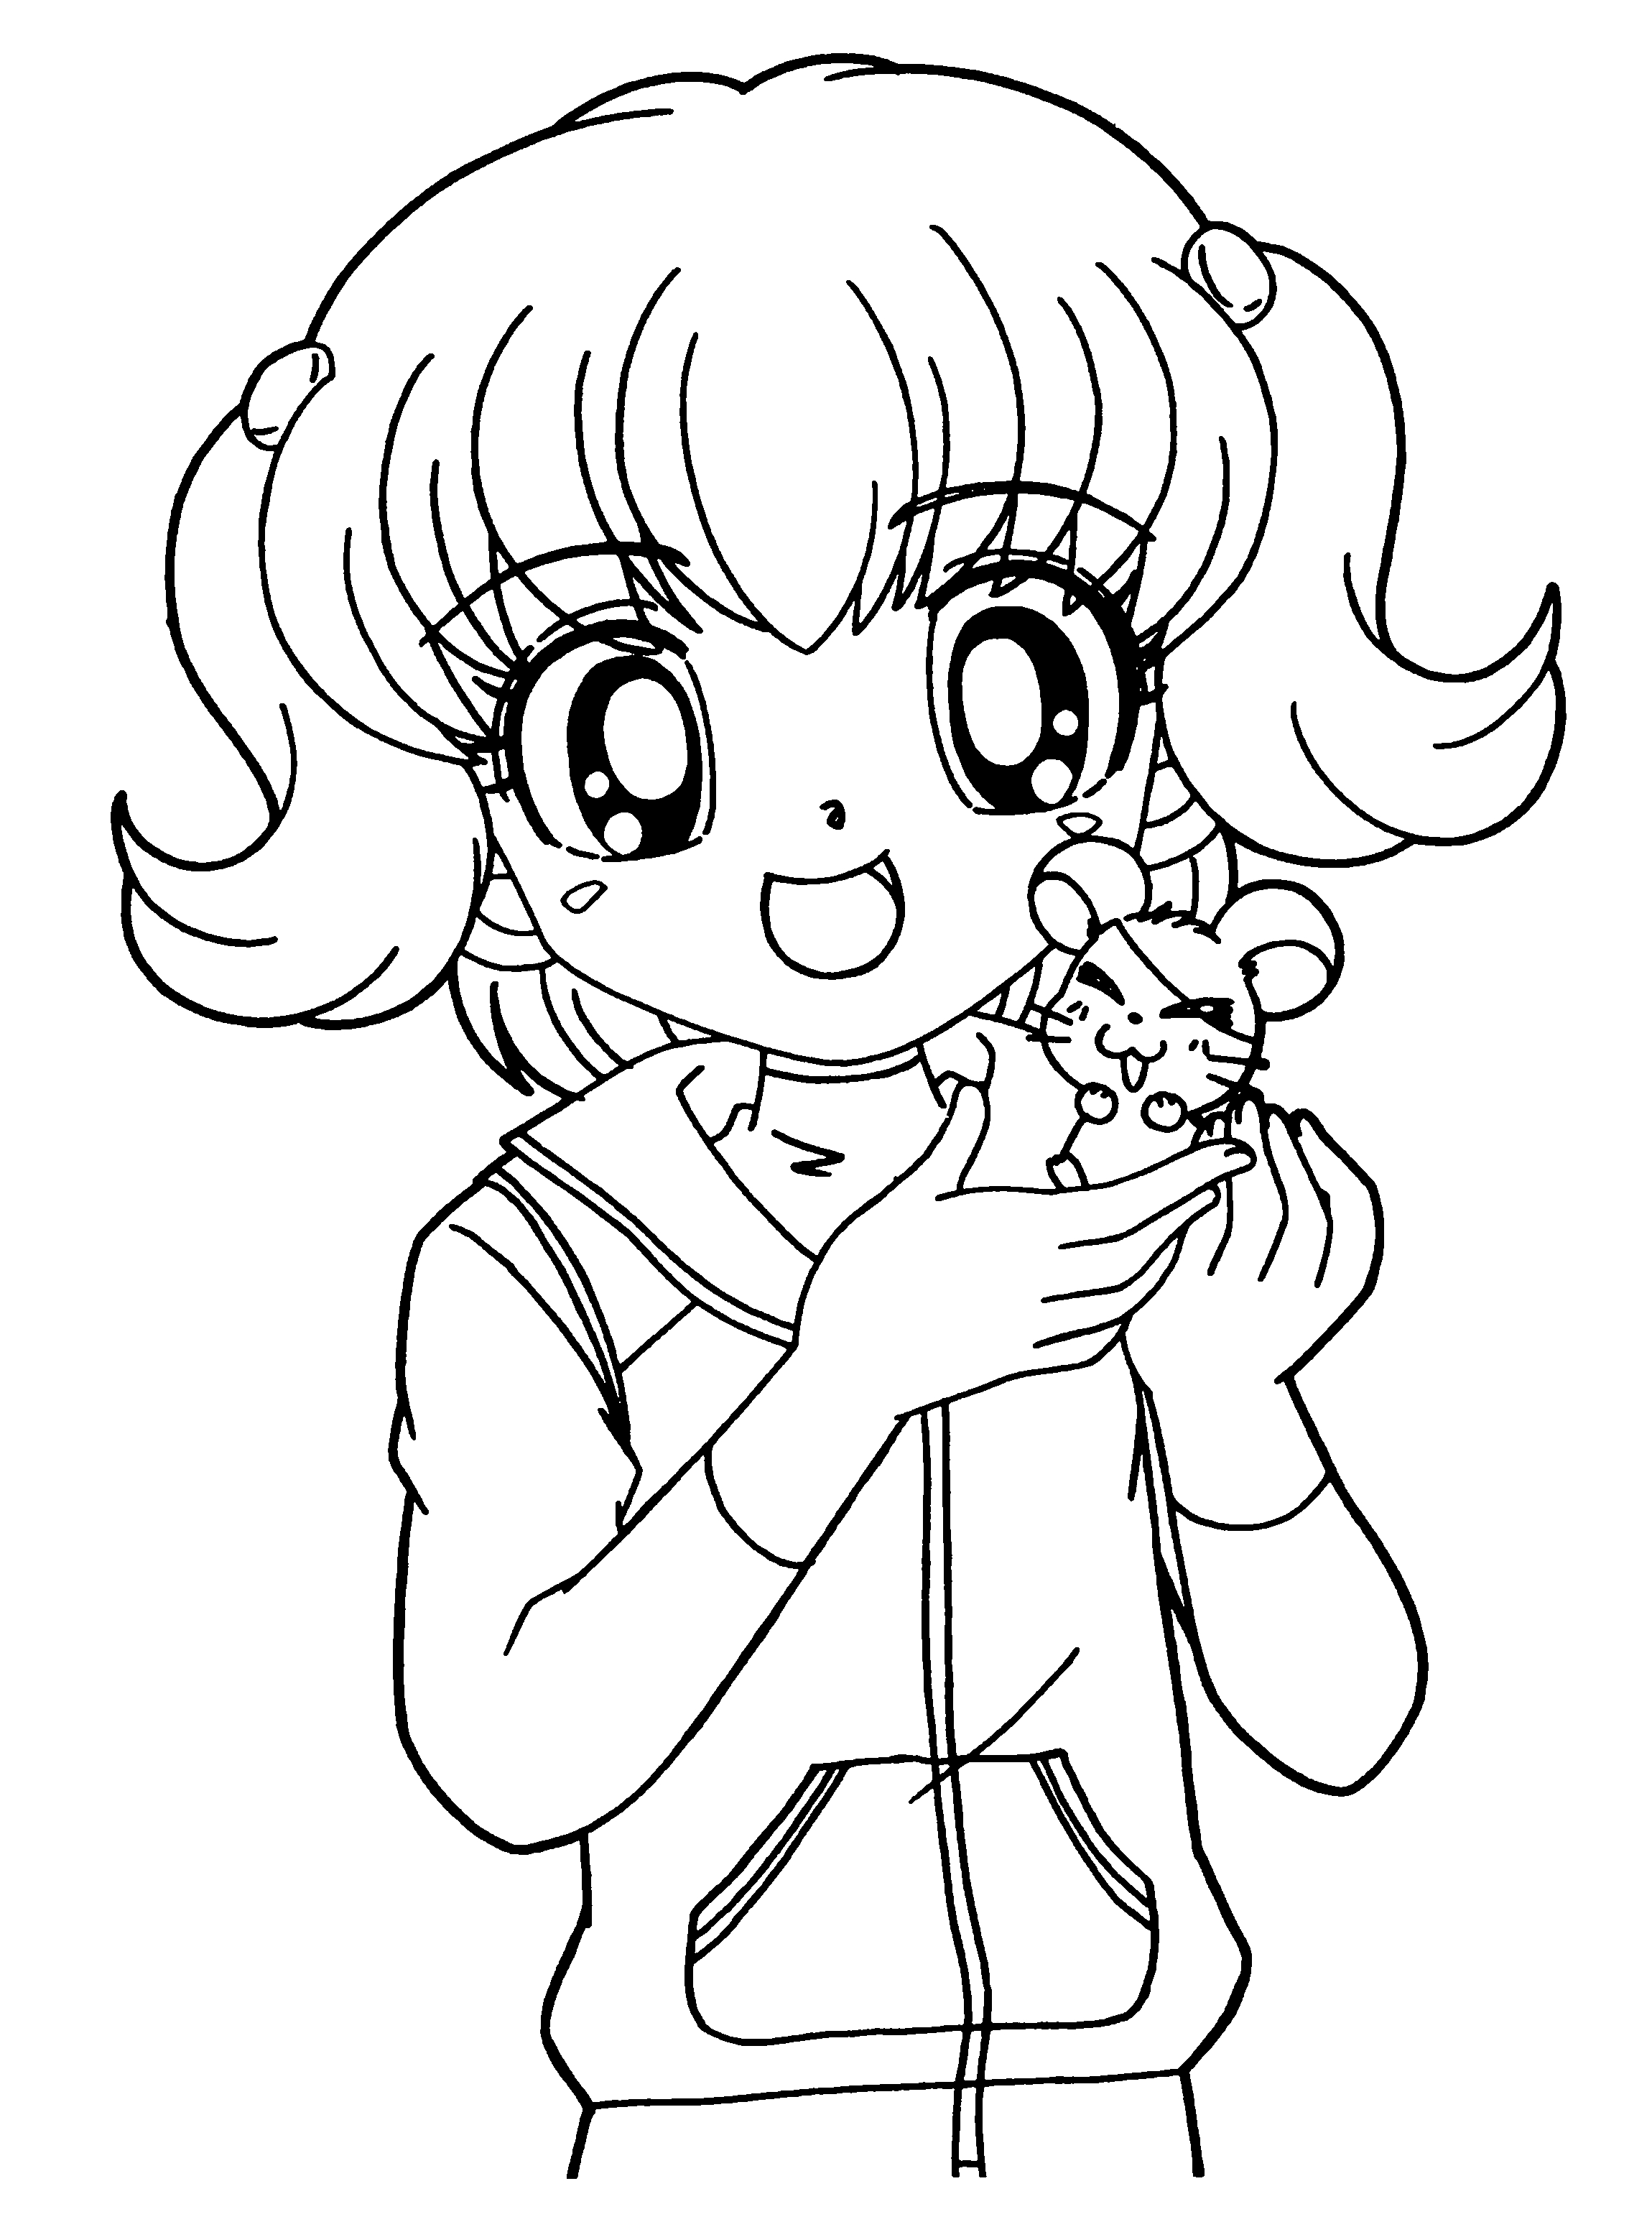 coloring pages of cute things coloring pages of cute things pages coloring cute things of